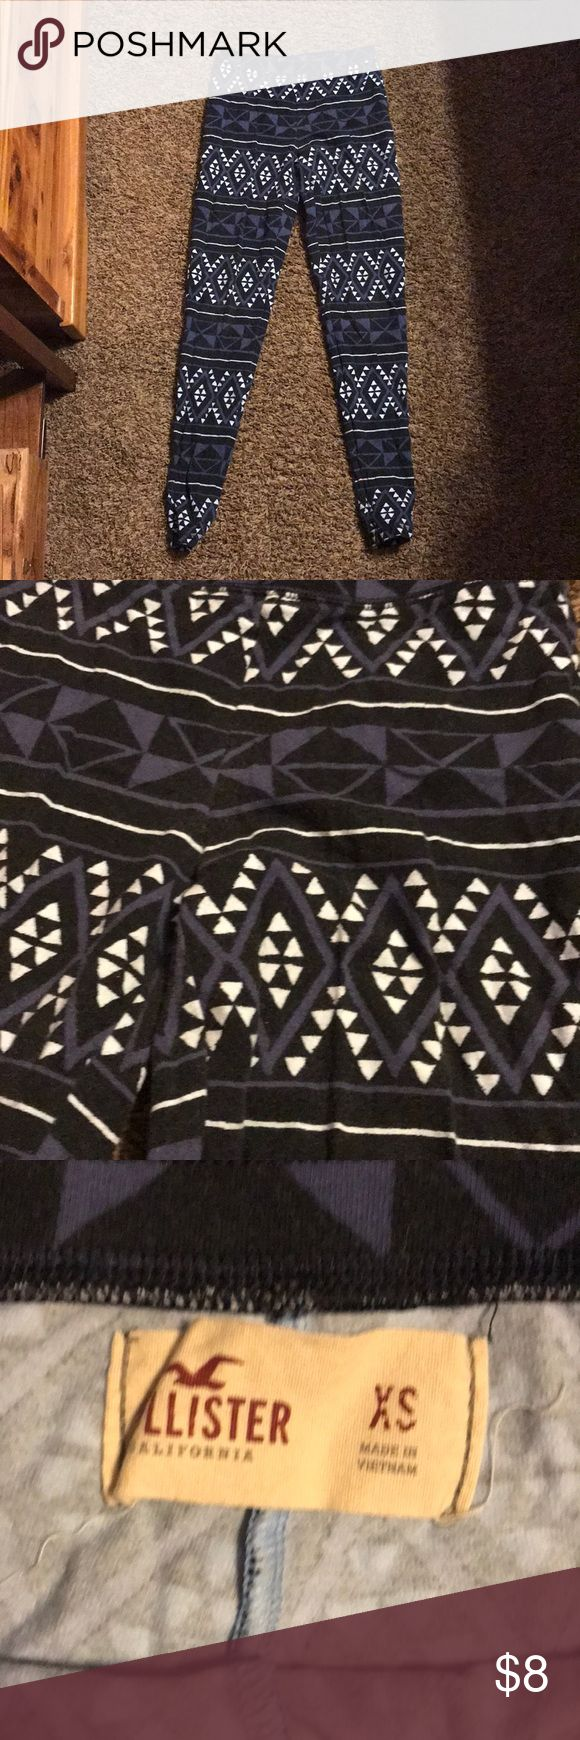 Aztec leggings Blue Aztec leggings from Hollister. Size XS and don't offer much stretch. Pretty worn but in good condition. No marks stains or tears. Smoke free home ‼️ make an offer 🙂 Hollister Pants Leggings